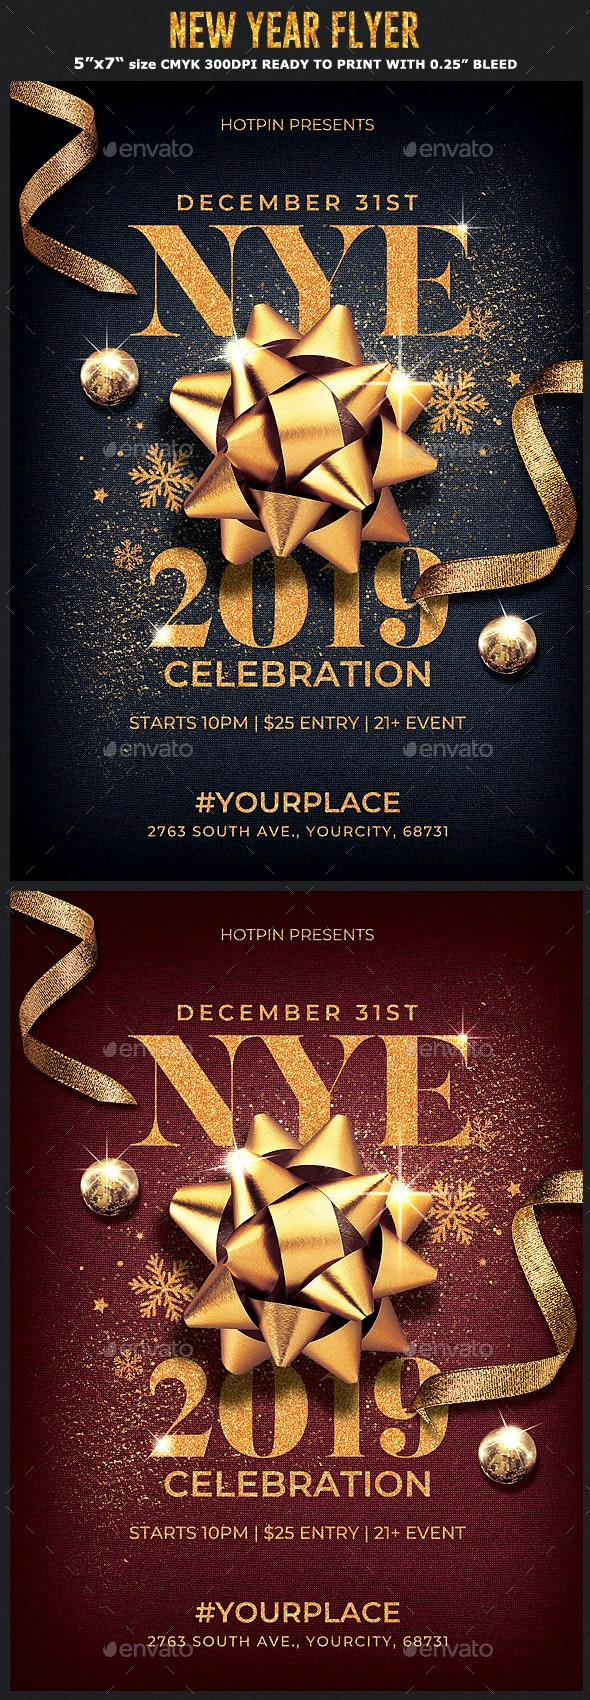 Classy New Year Eve Flyer - Events Flyers